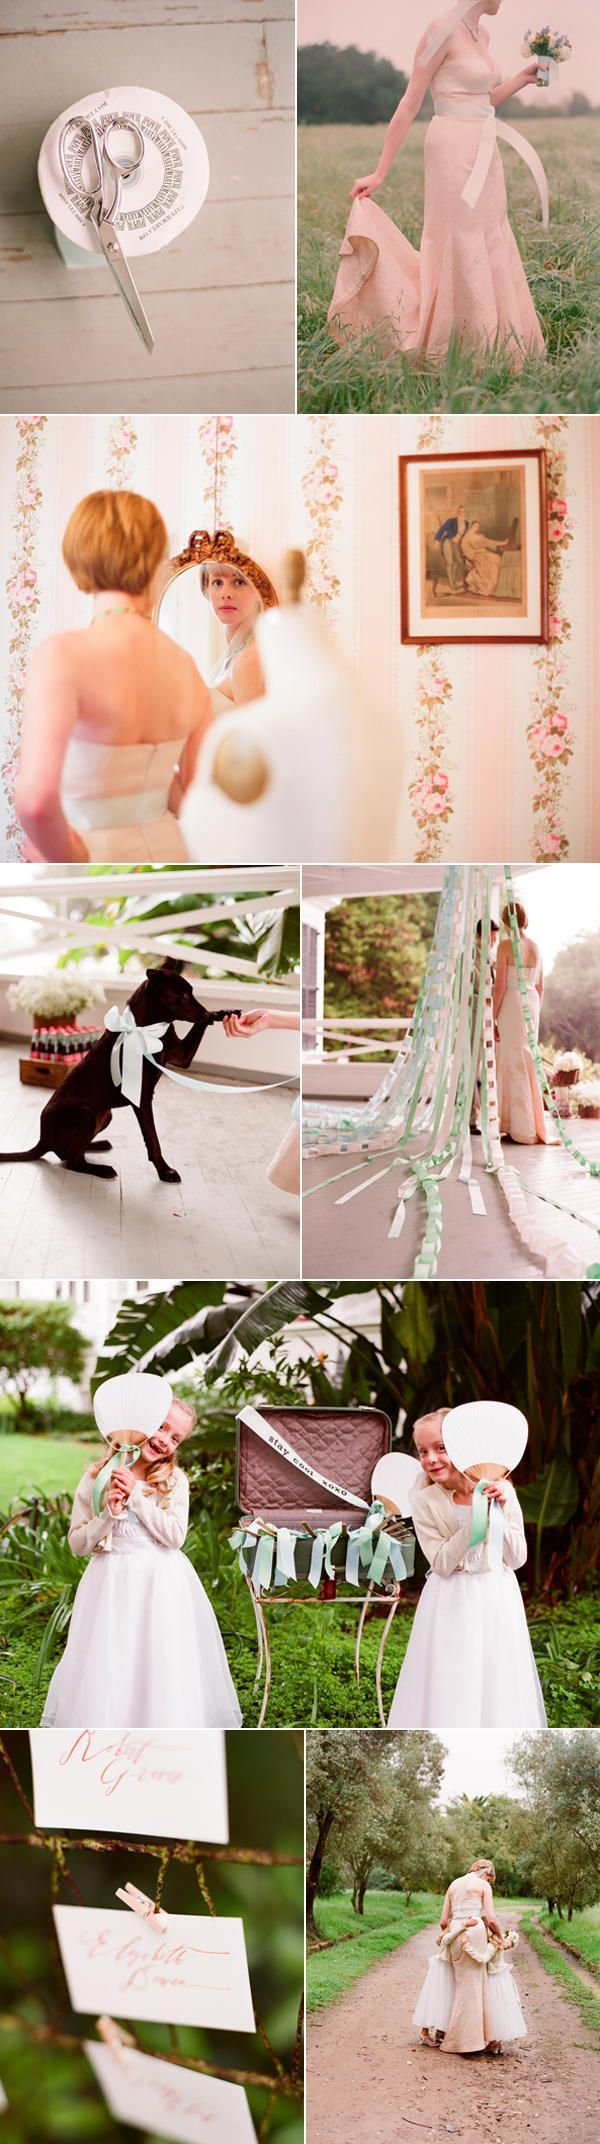 Playful Wedding Ideas